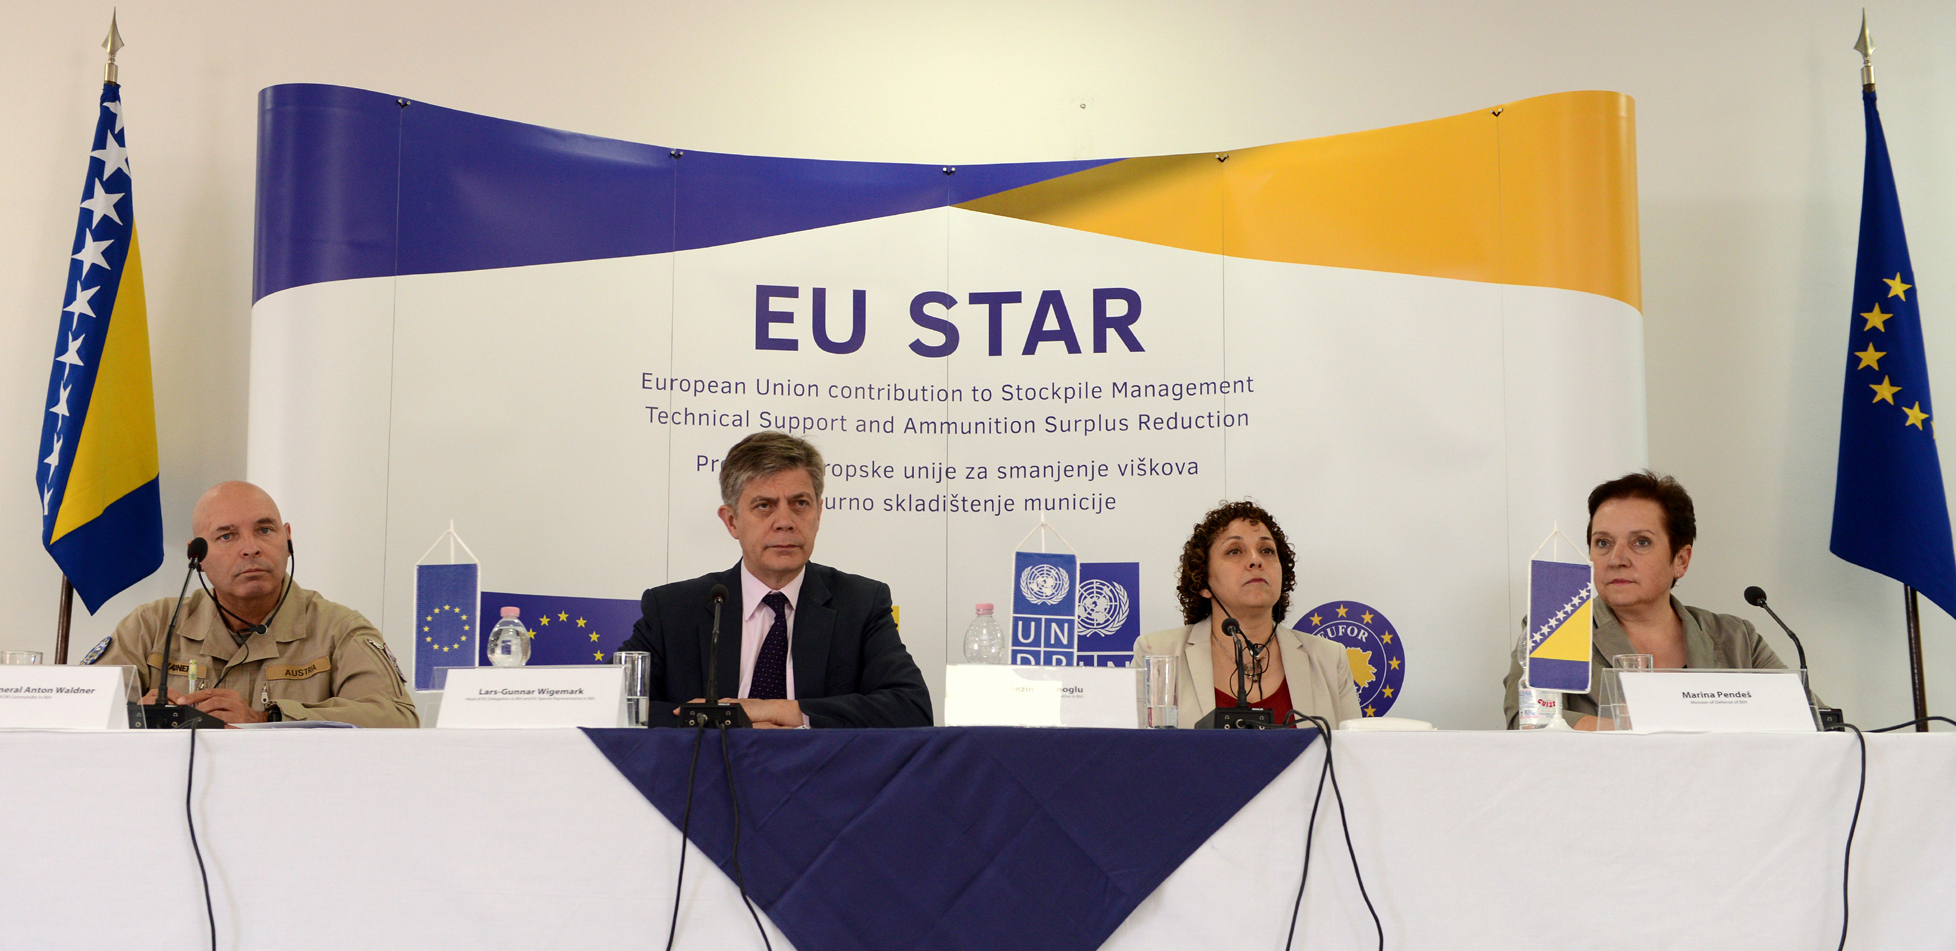 eu-star-project-signing-ceremony_35875150486_o